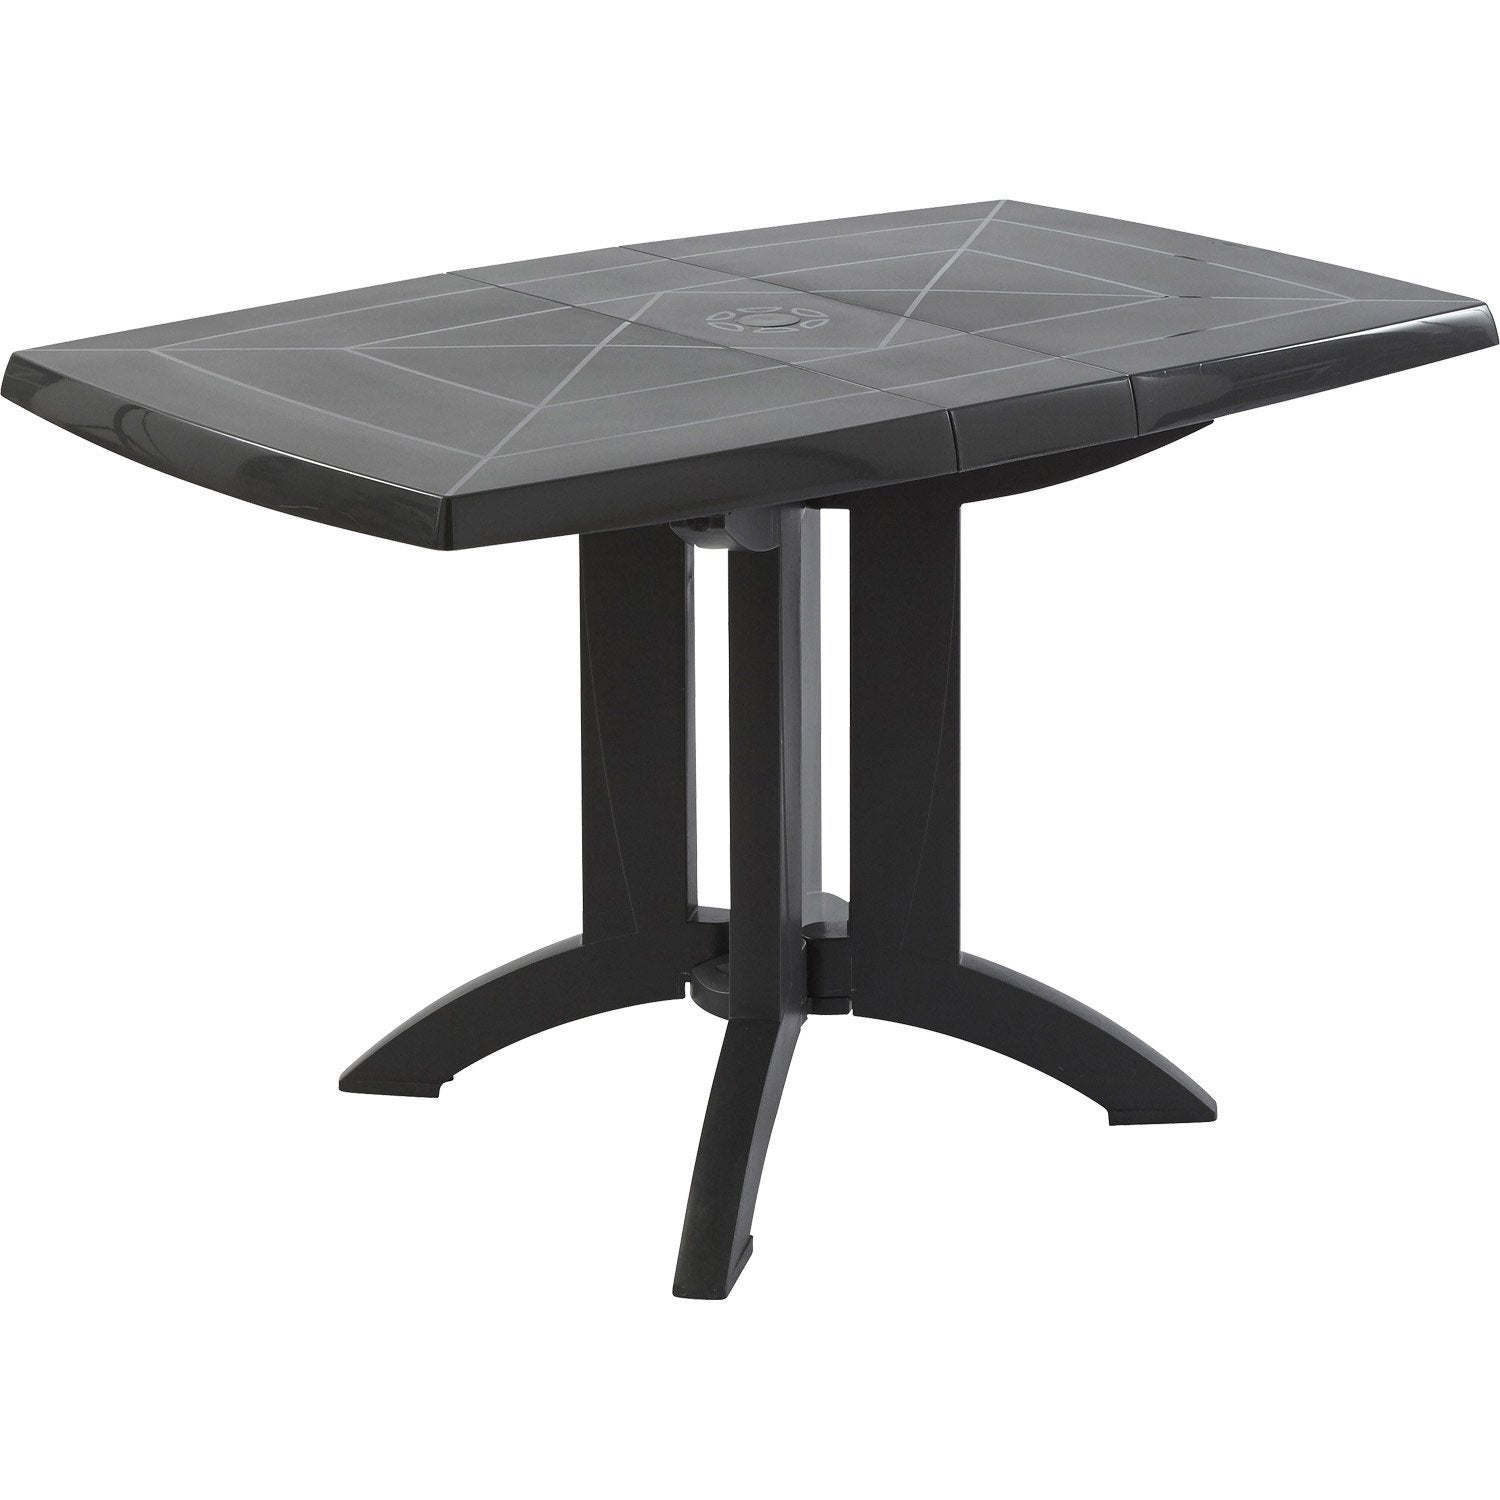 table de jardin grosfillex v ga rectangulaire anthracite 4. Black Bedroom Furniture Sets. Home Design Ideas